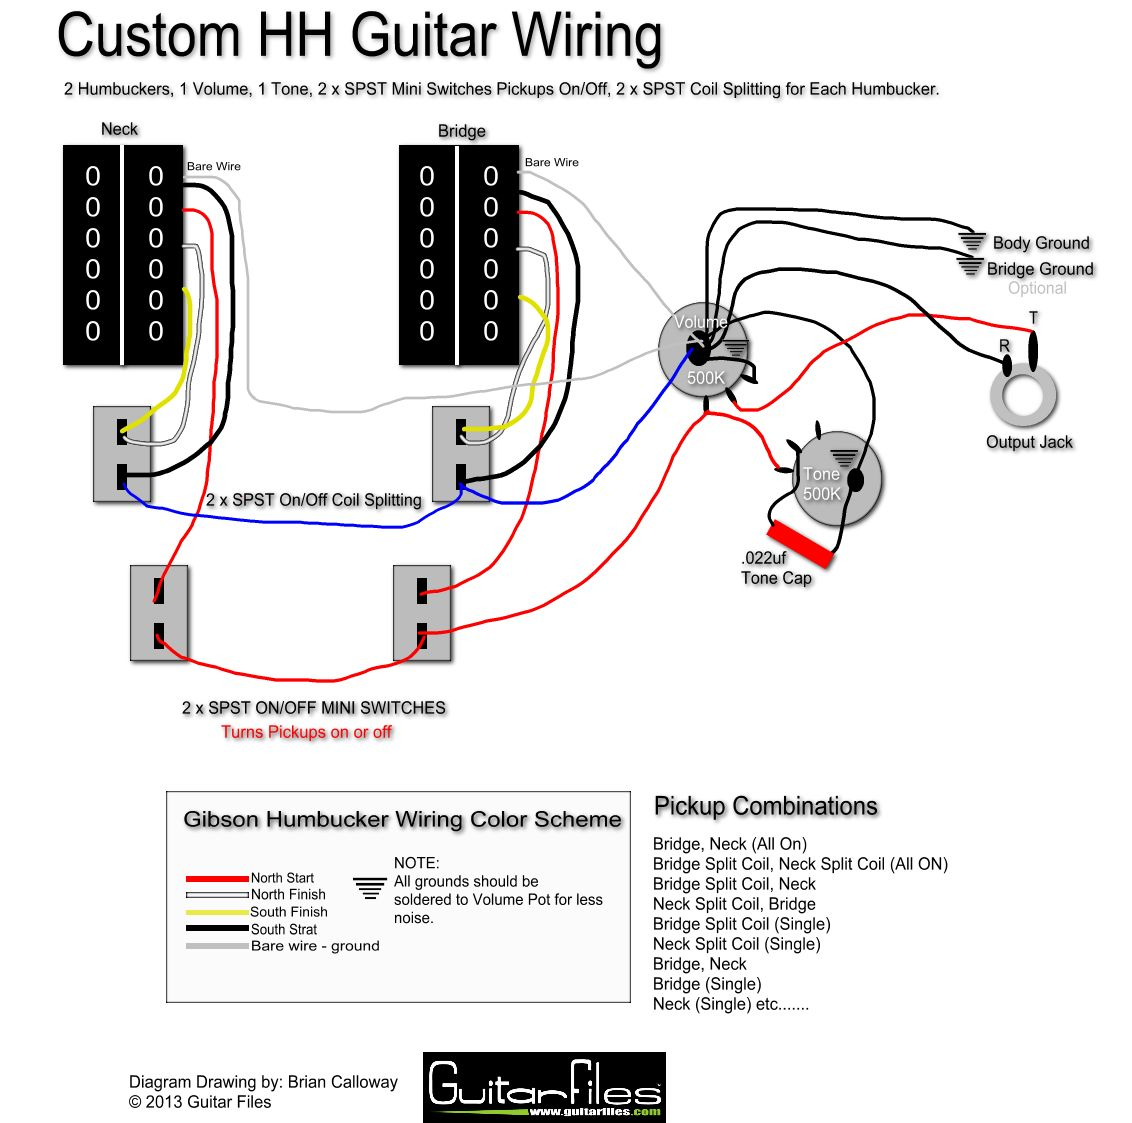 afe4f8370c0d308d426df63ec12f015c hh wiring diagram fender stagemaster hh wiring diagram \u2022 wiring  at panicattacktreatment.co